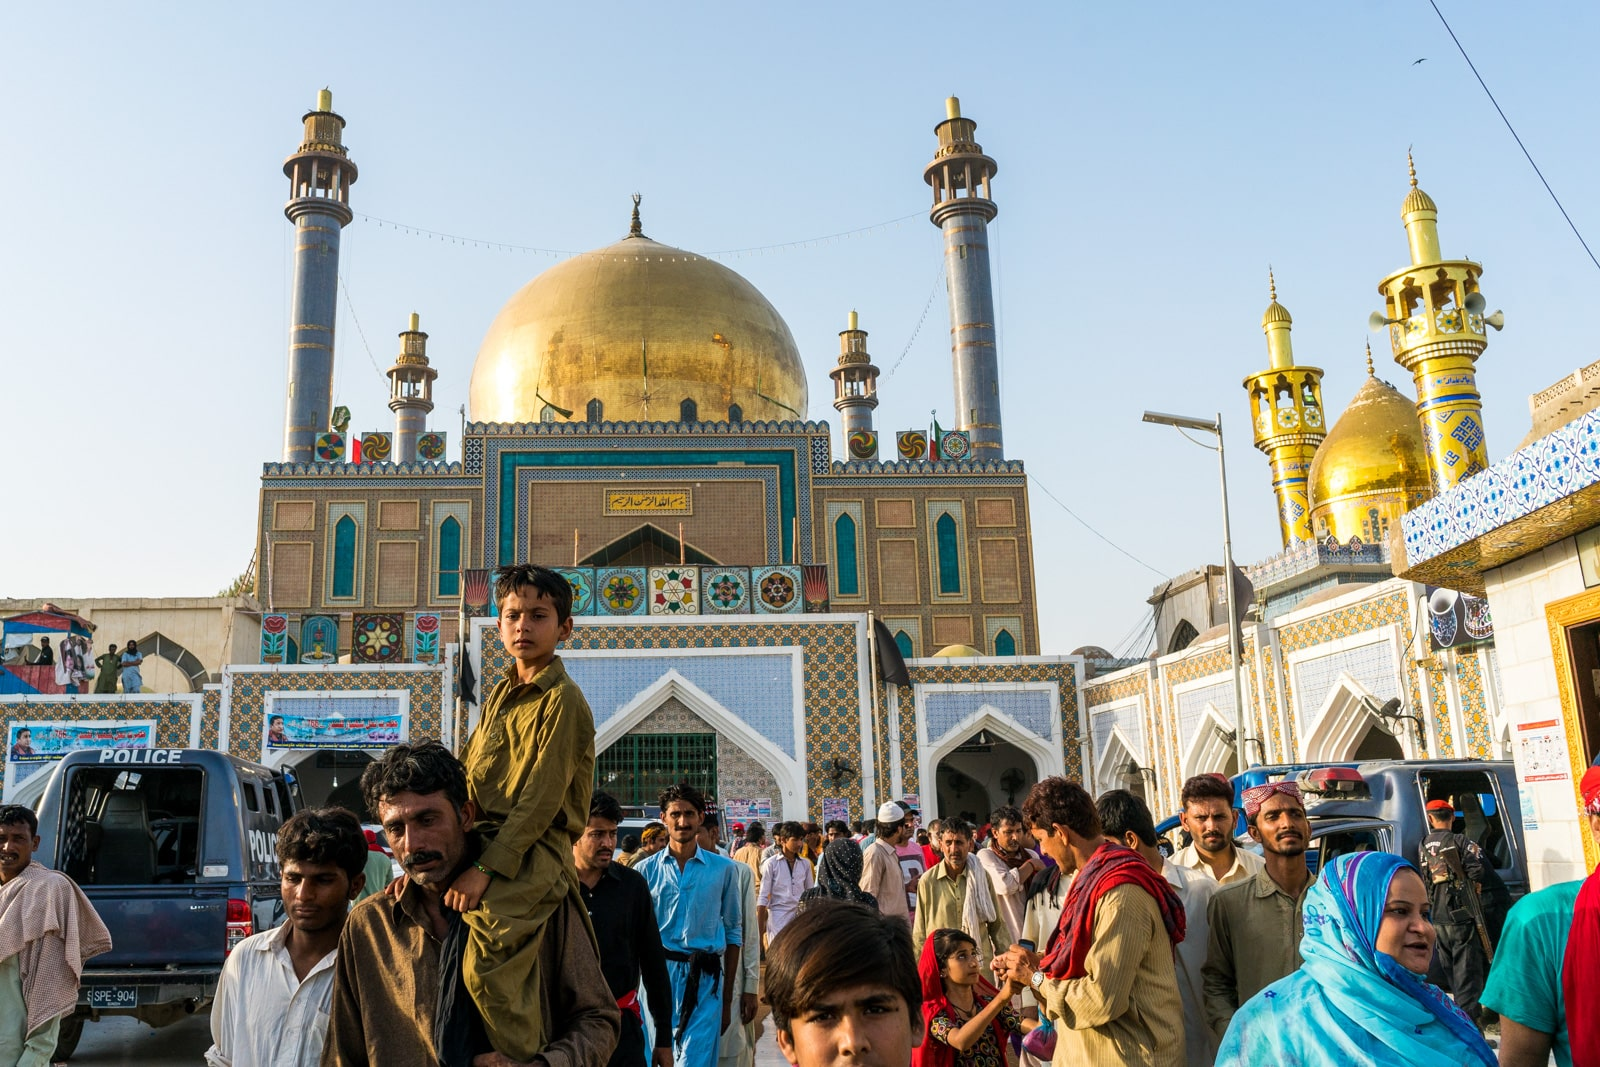 Sindh travel guide - Urs crowds at the shrine of Lal Shahbaz Qalandar in Sehwan Sharif, Pakistan - Lost With Purpose travel blog